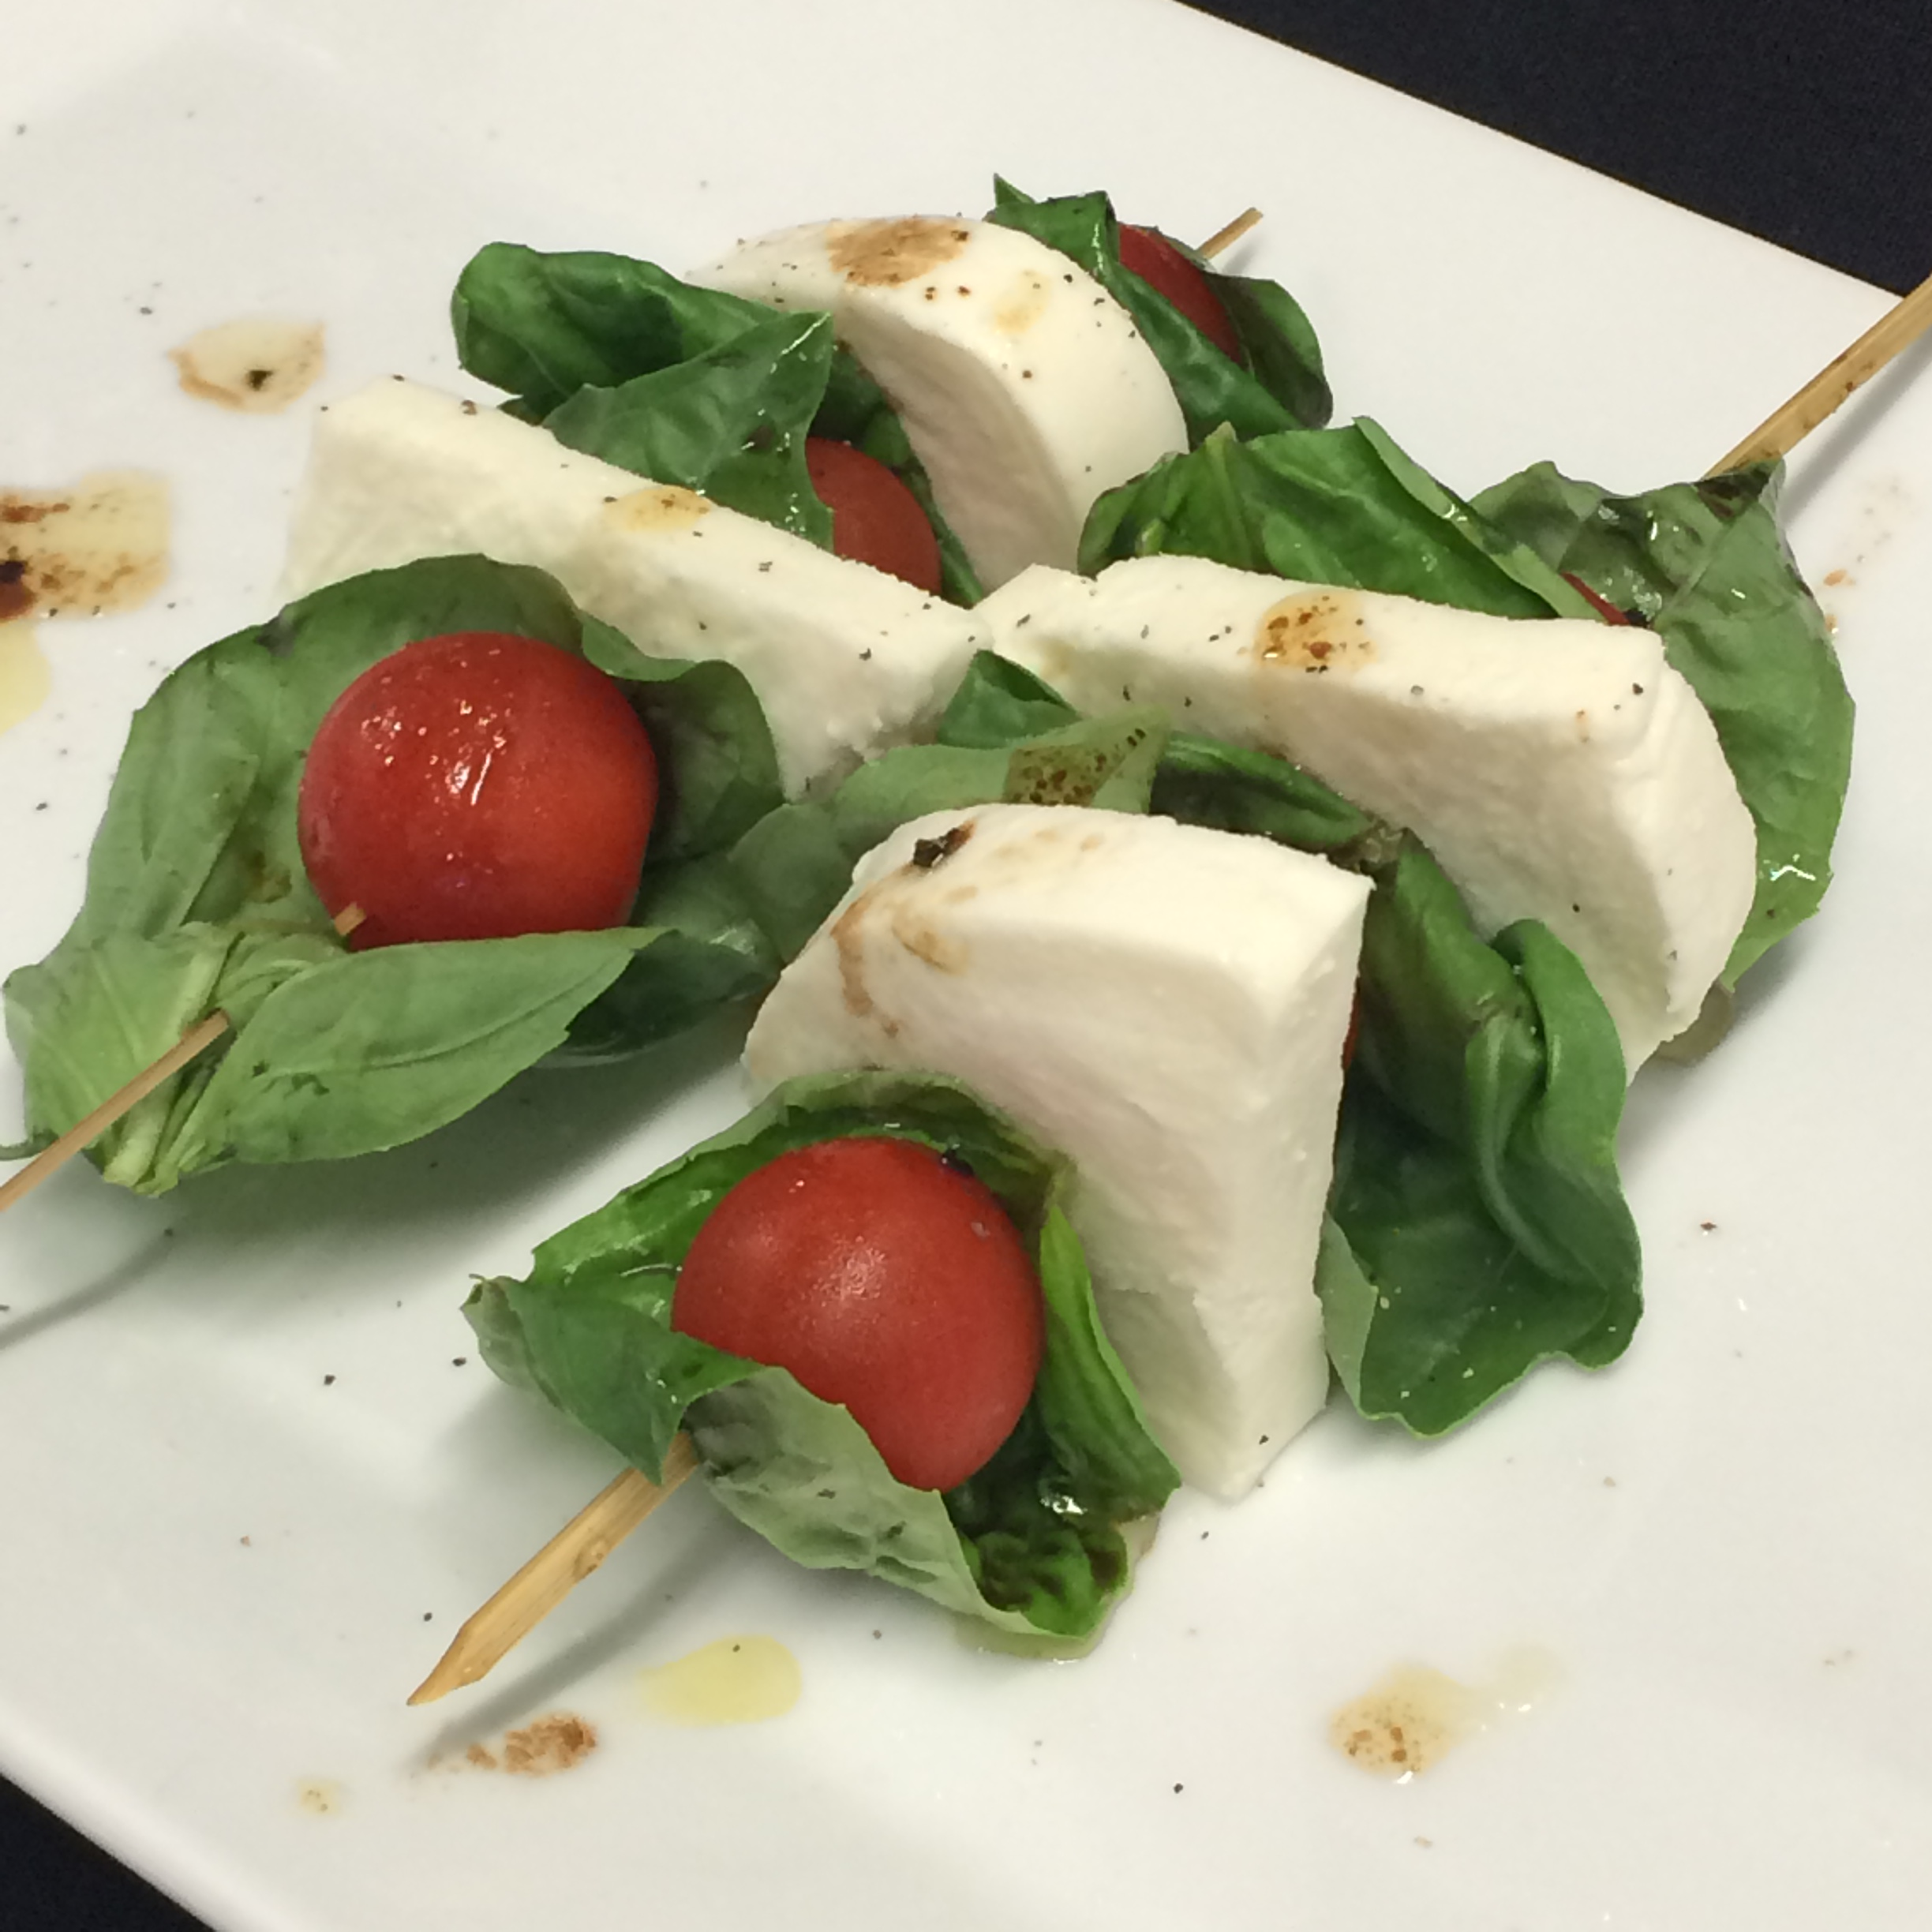 Caprese Salad Skewers with fresh, thickly-cut mozzarella and drizzled in balsamic vinegar and olive oil.  Gourmet Small Plates by LeCroissant Catering & Events Gourmet Small Plates by LeCroissant Catering & Events 2015 07 30 17